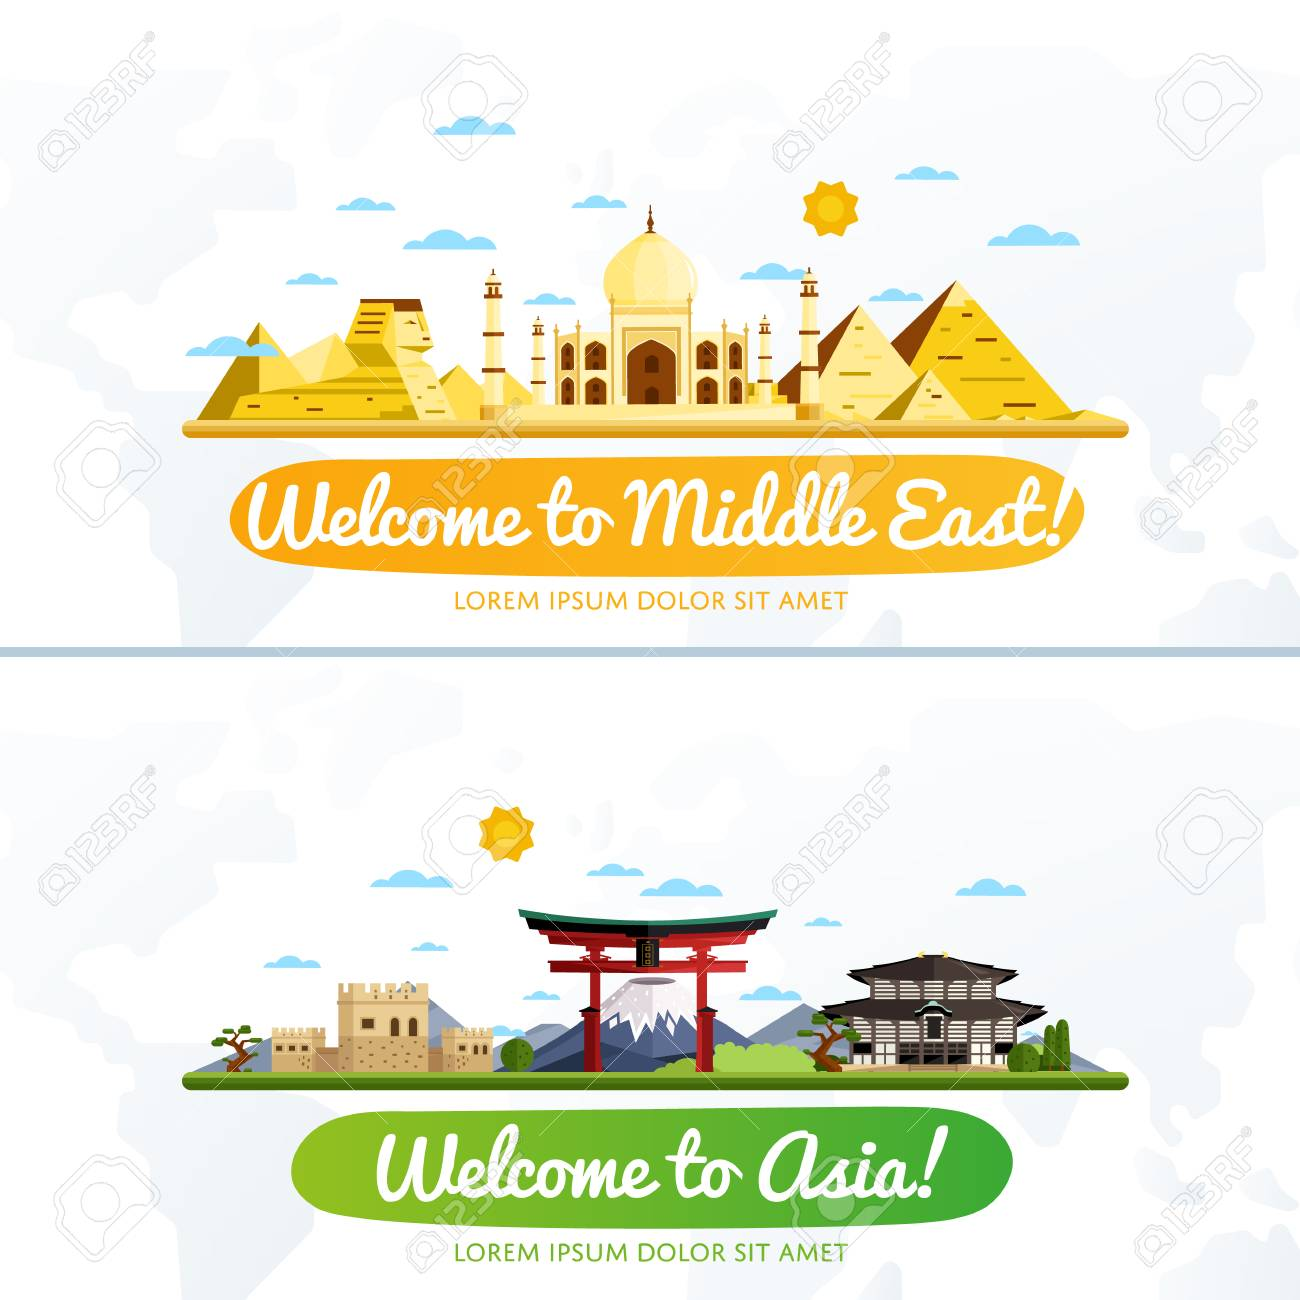 Welcome to Middle East and Asia, travel on the world concept, traveling flat vector illustration. - 58662389